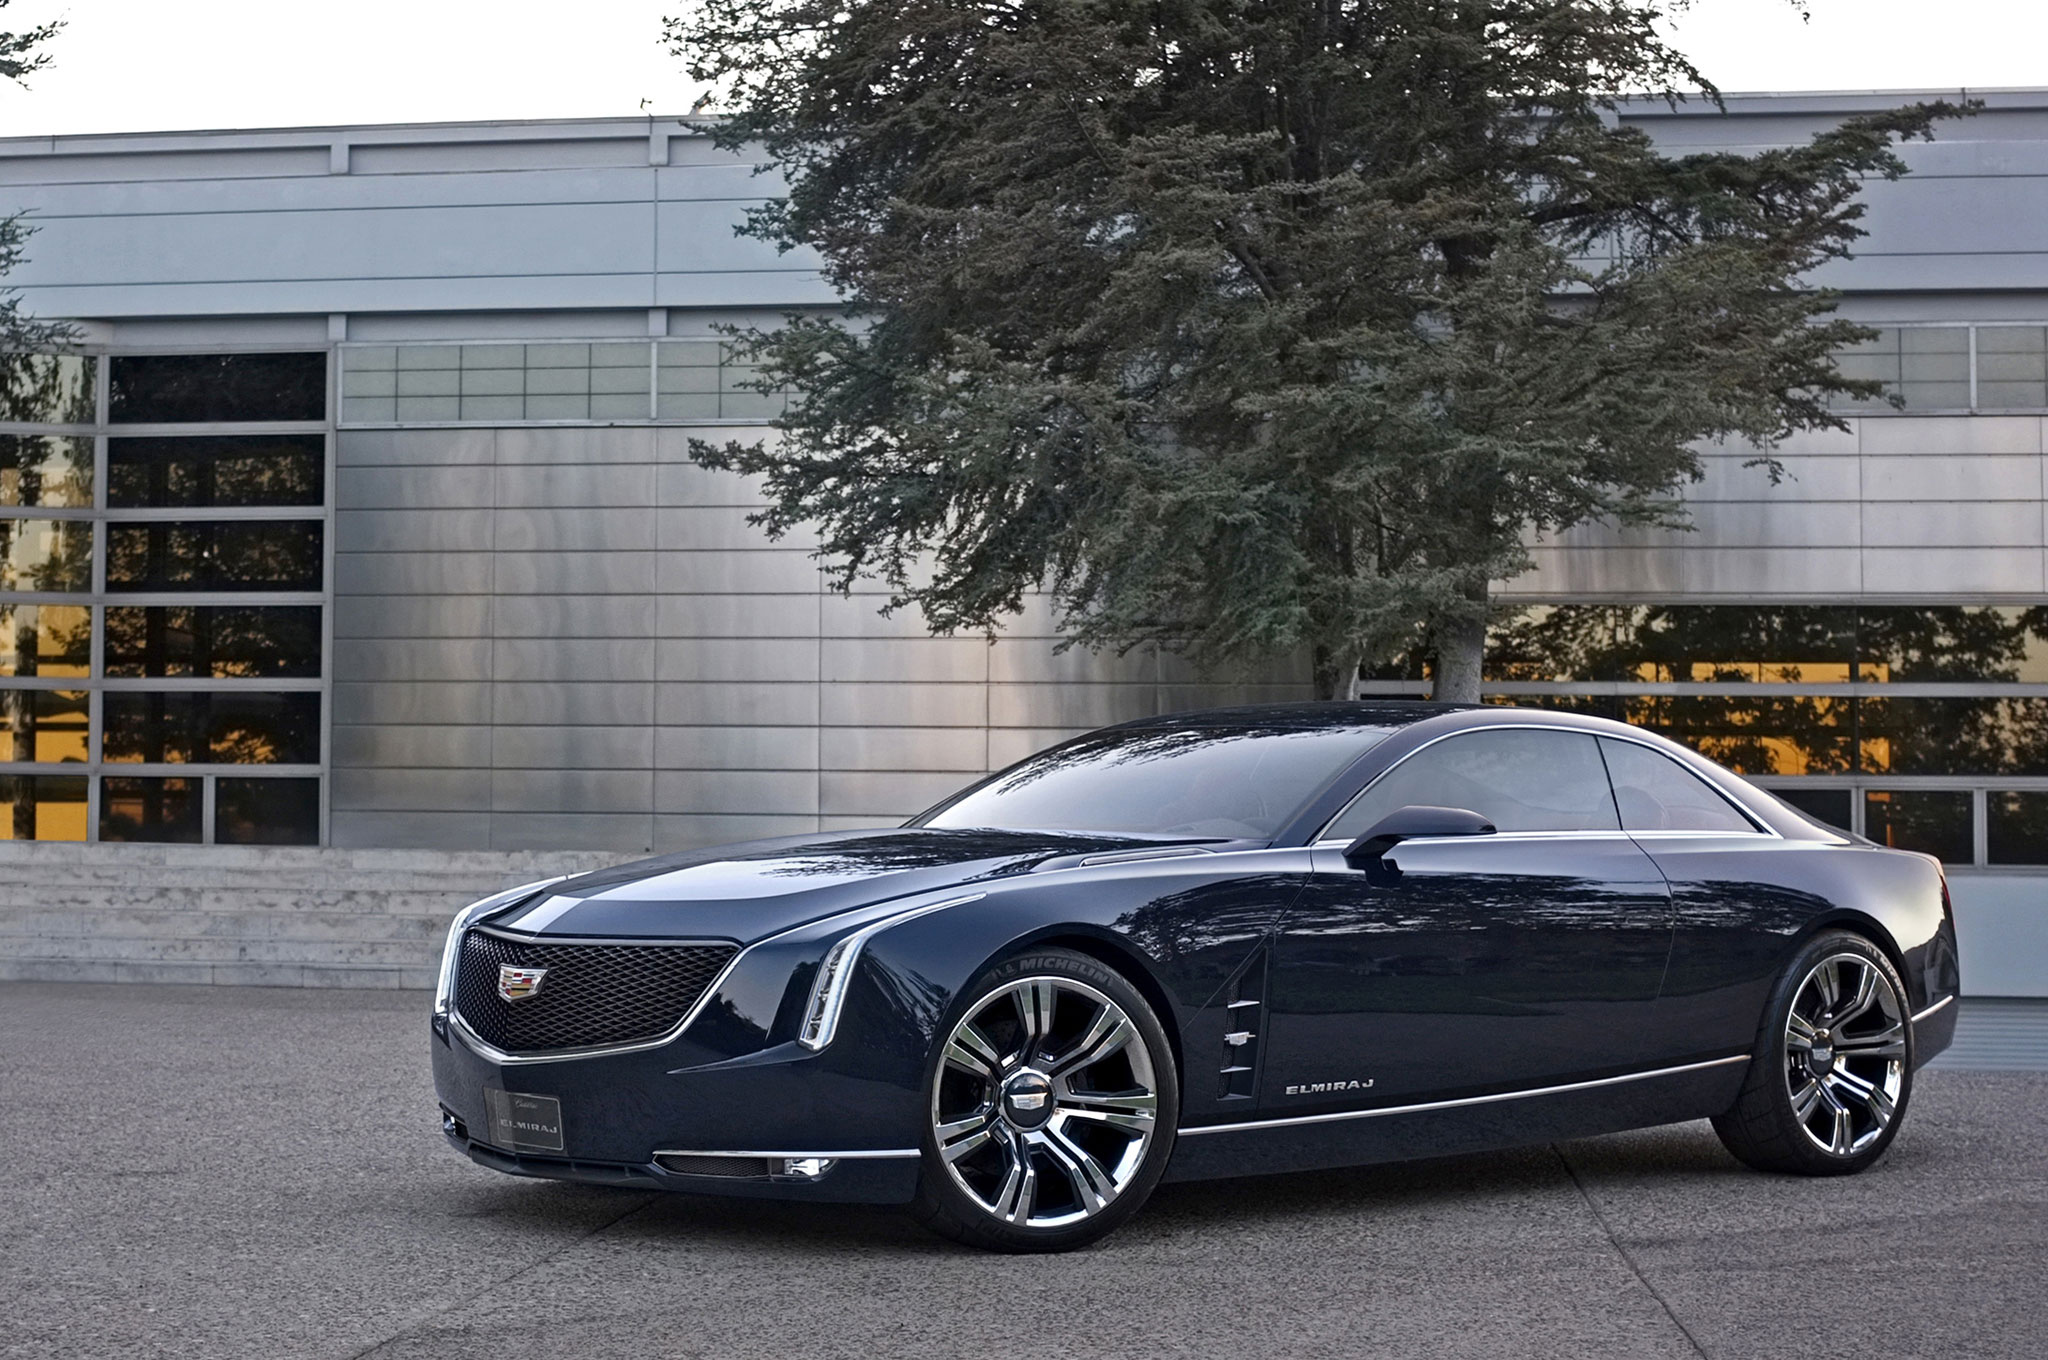 xlr sports cadillac cars news worst